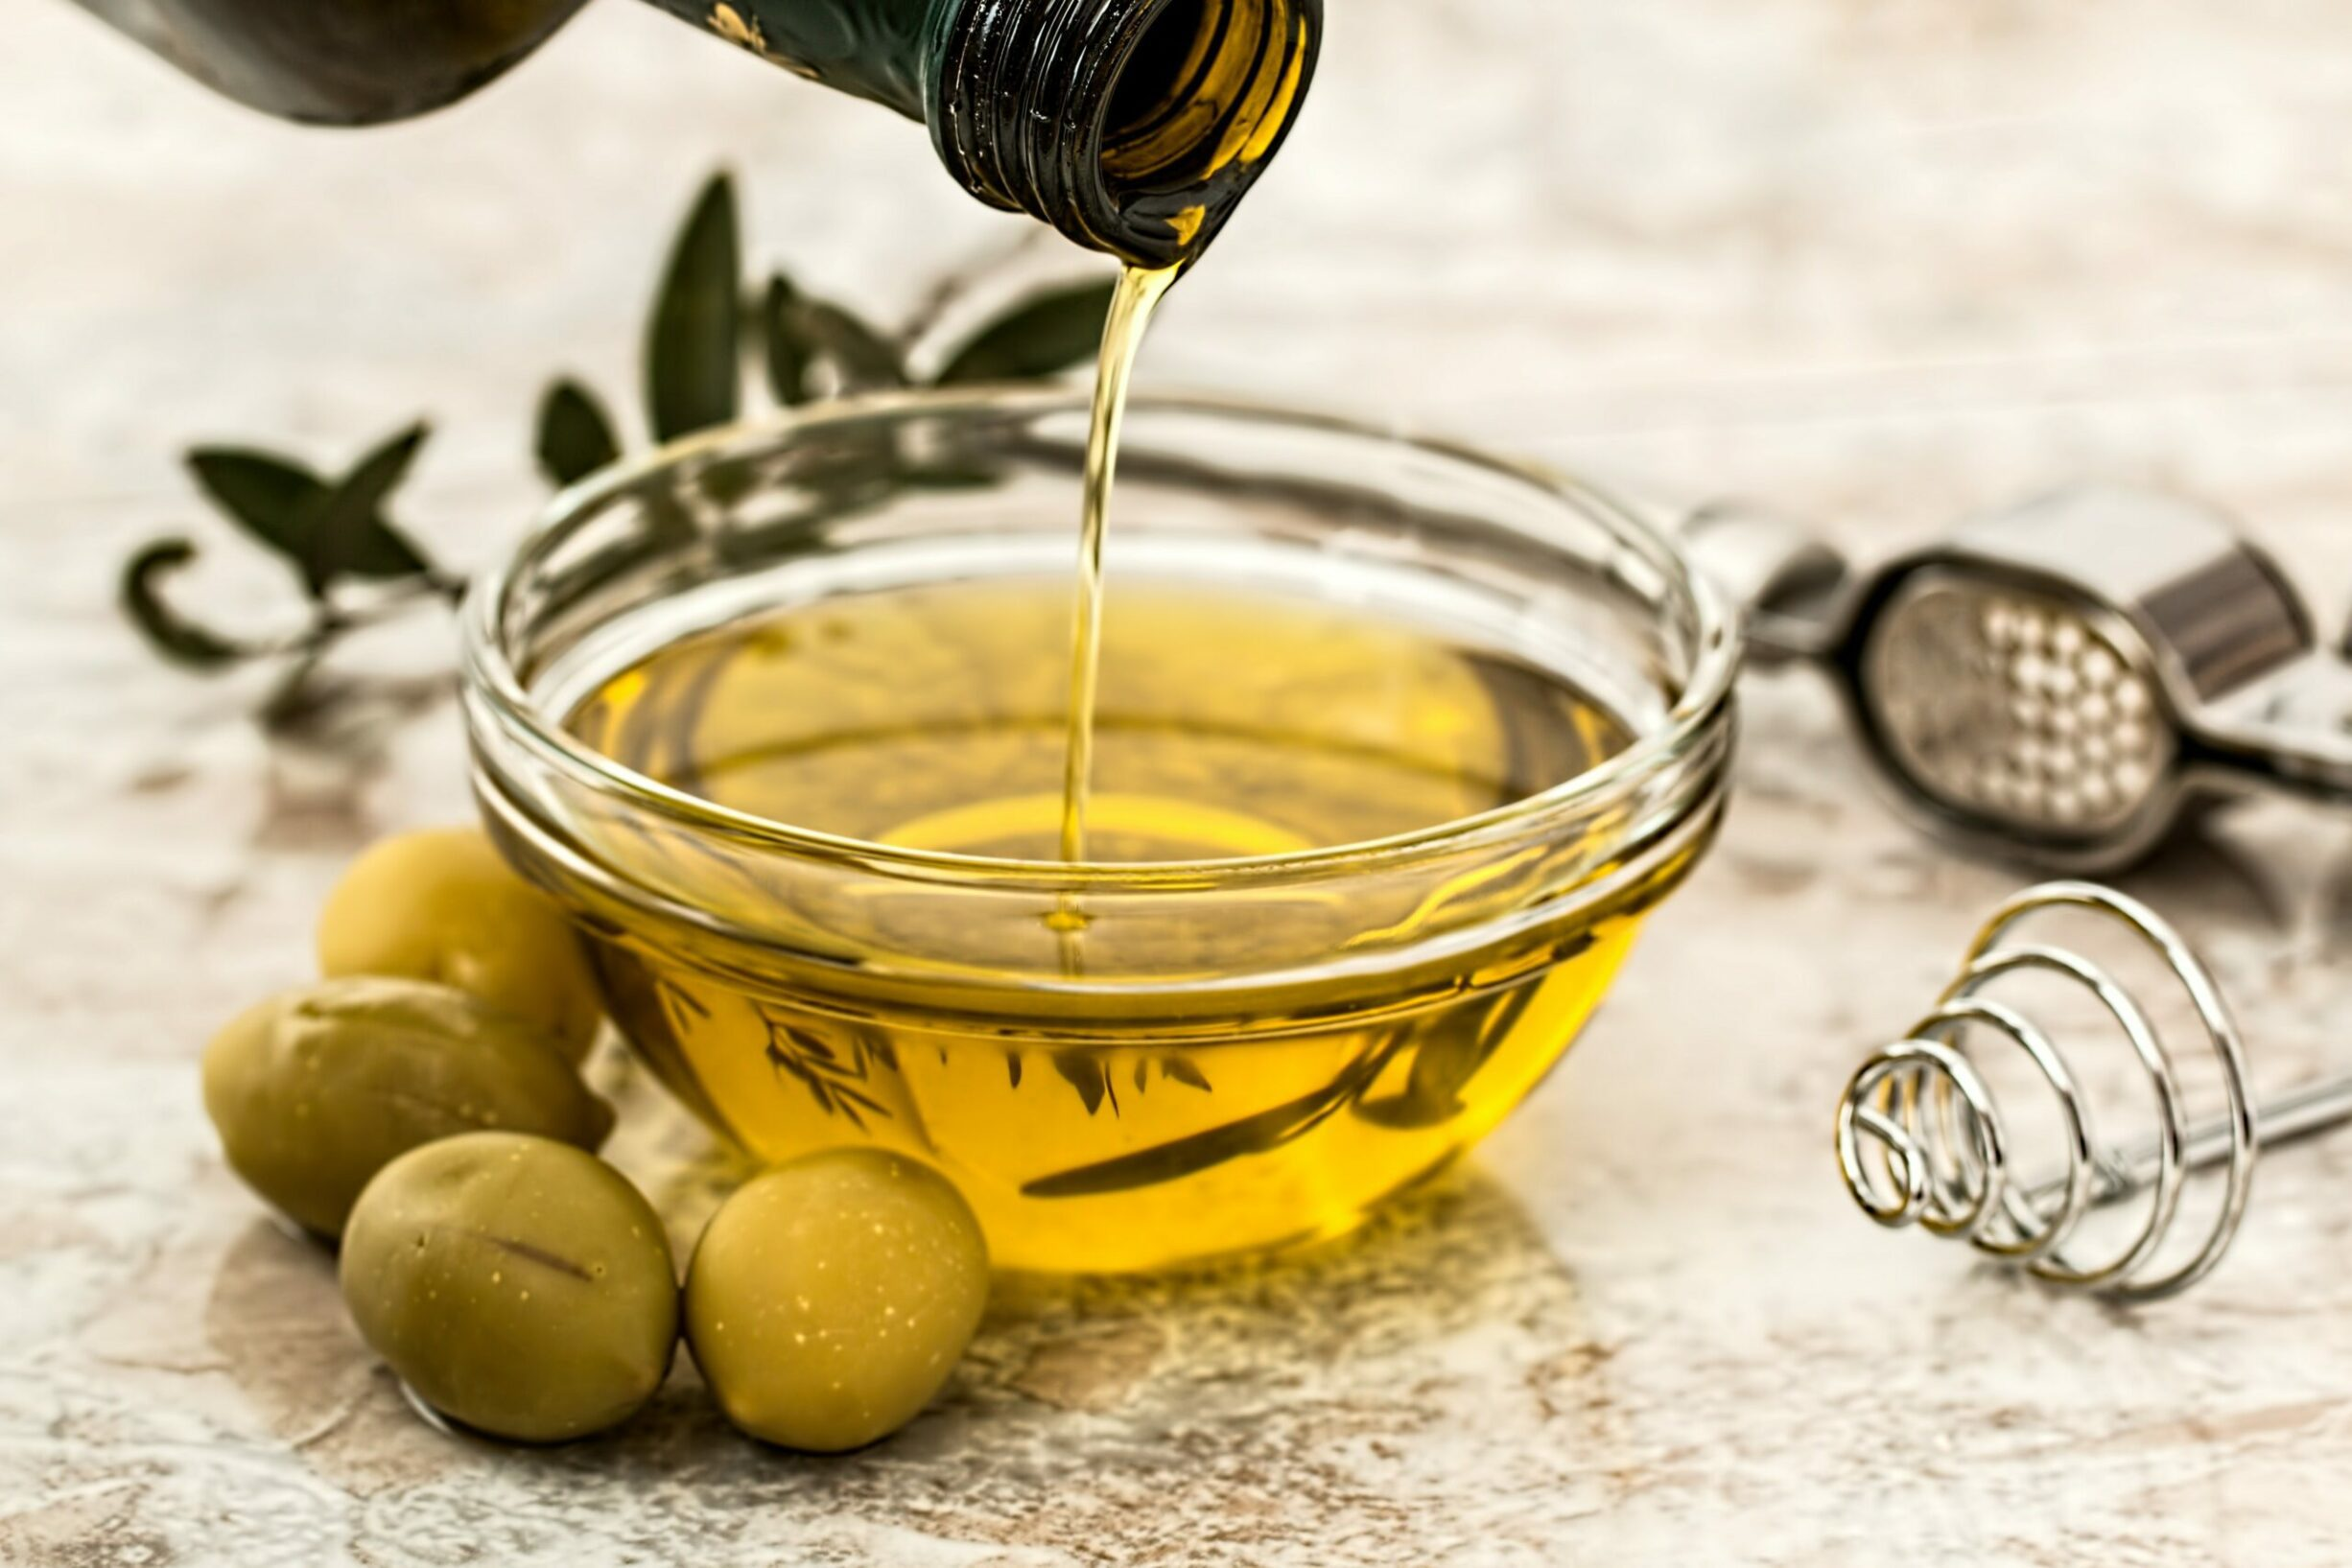 Image of olive oil being poured in a clear bowl with olives and olive leaves around it